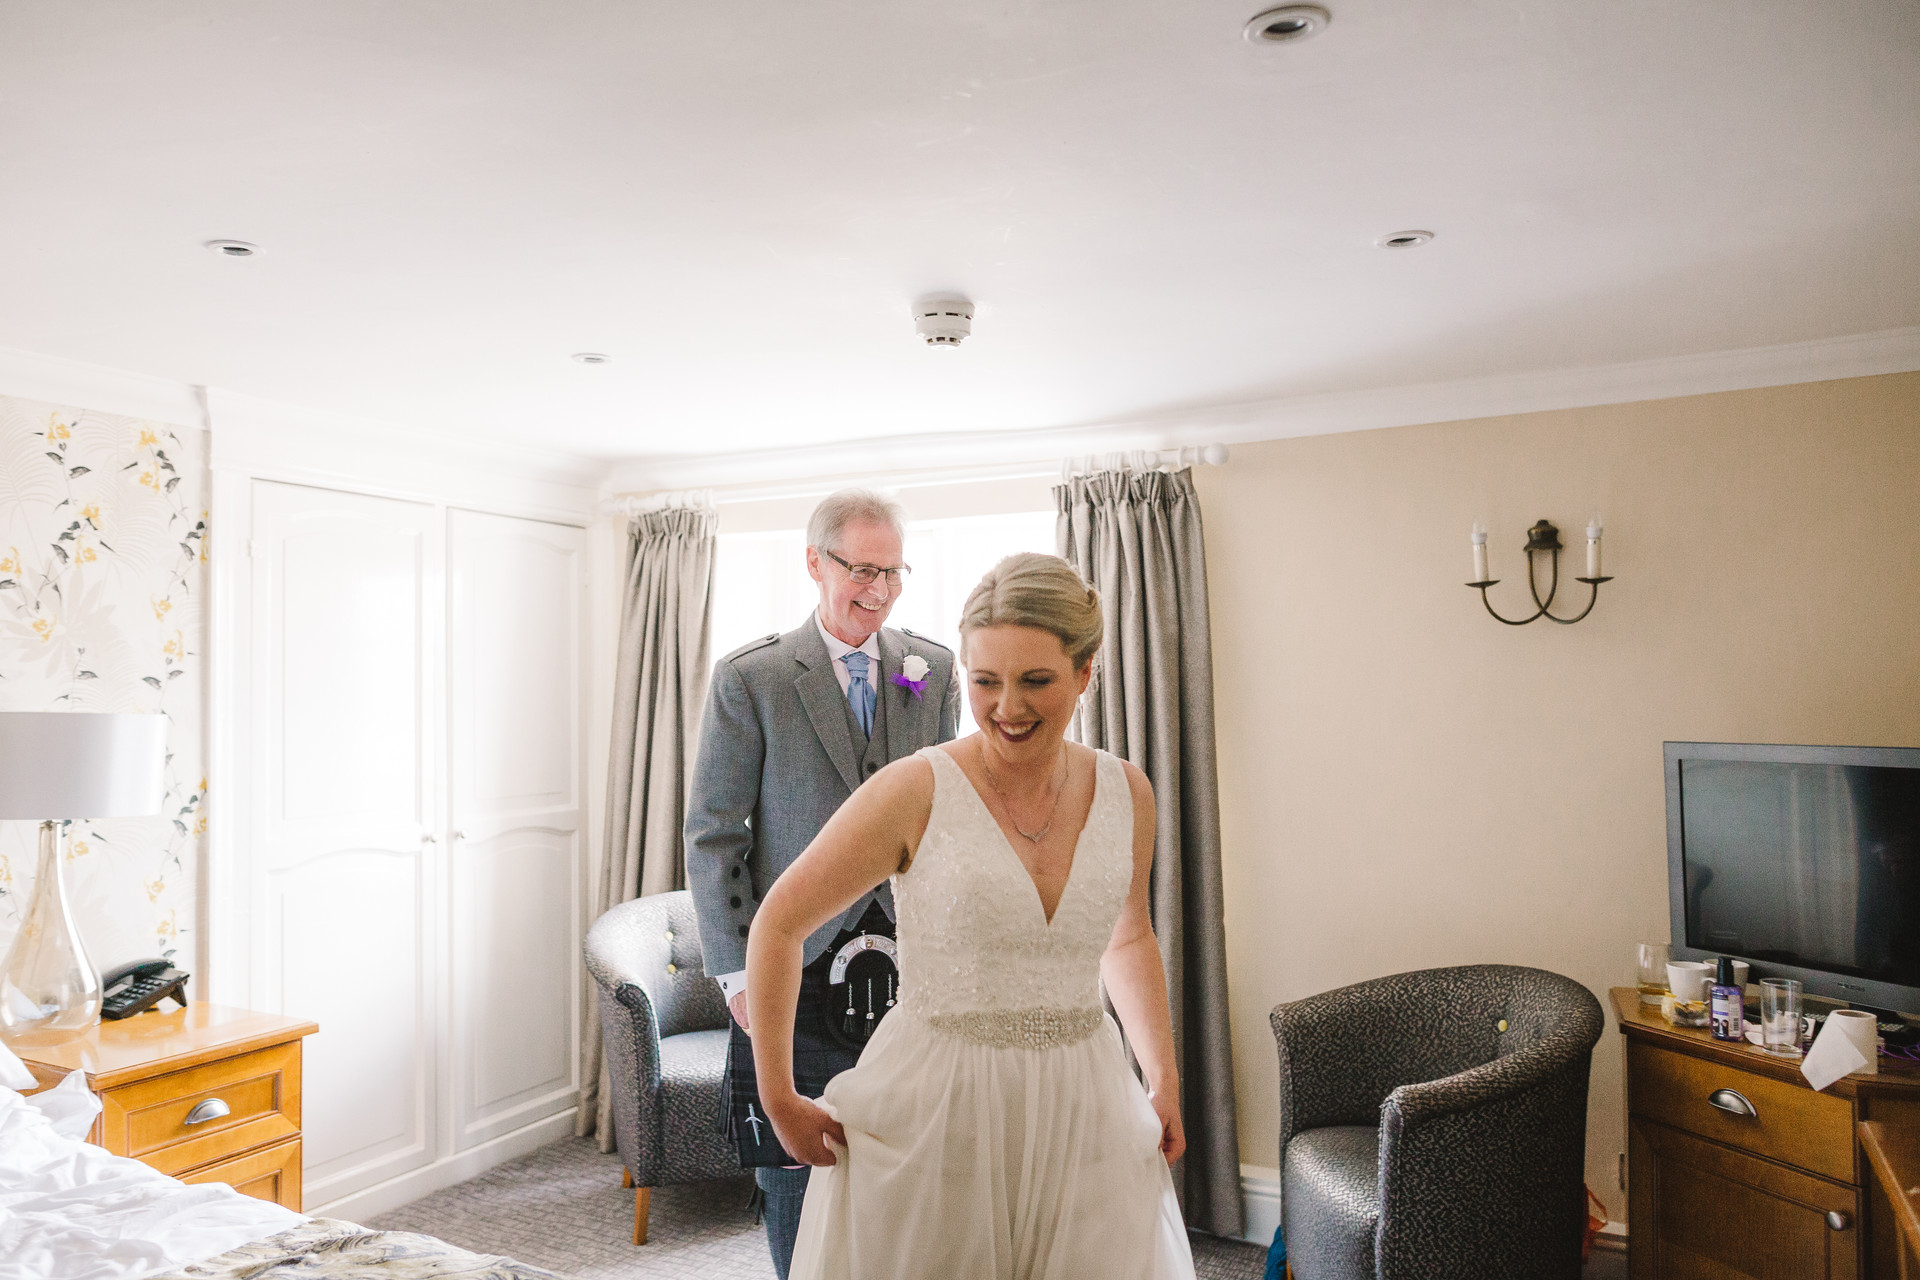 documentary photography in wetherby